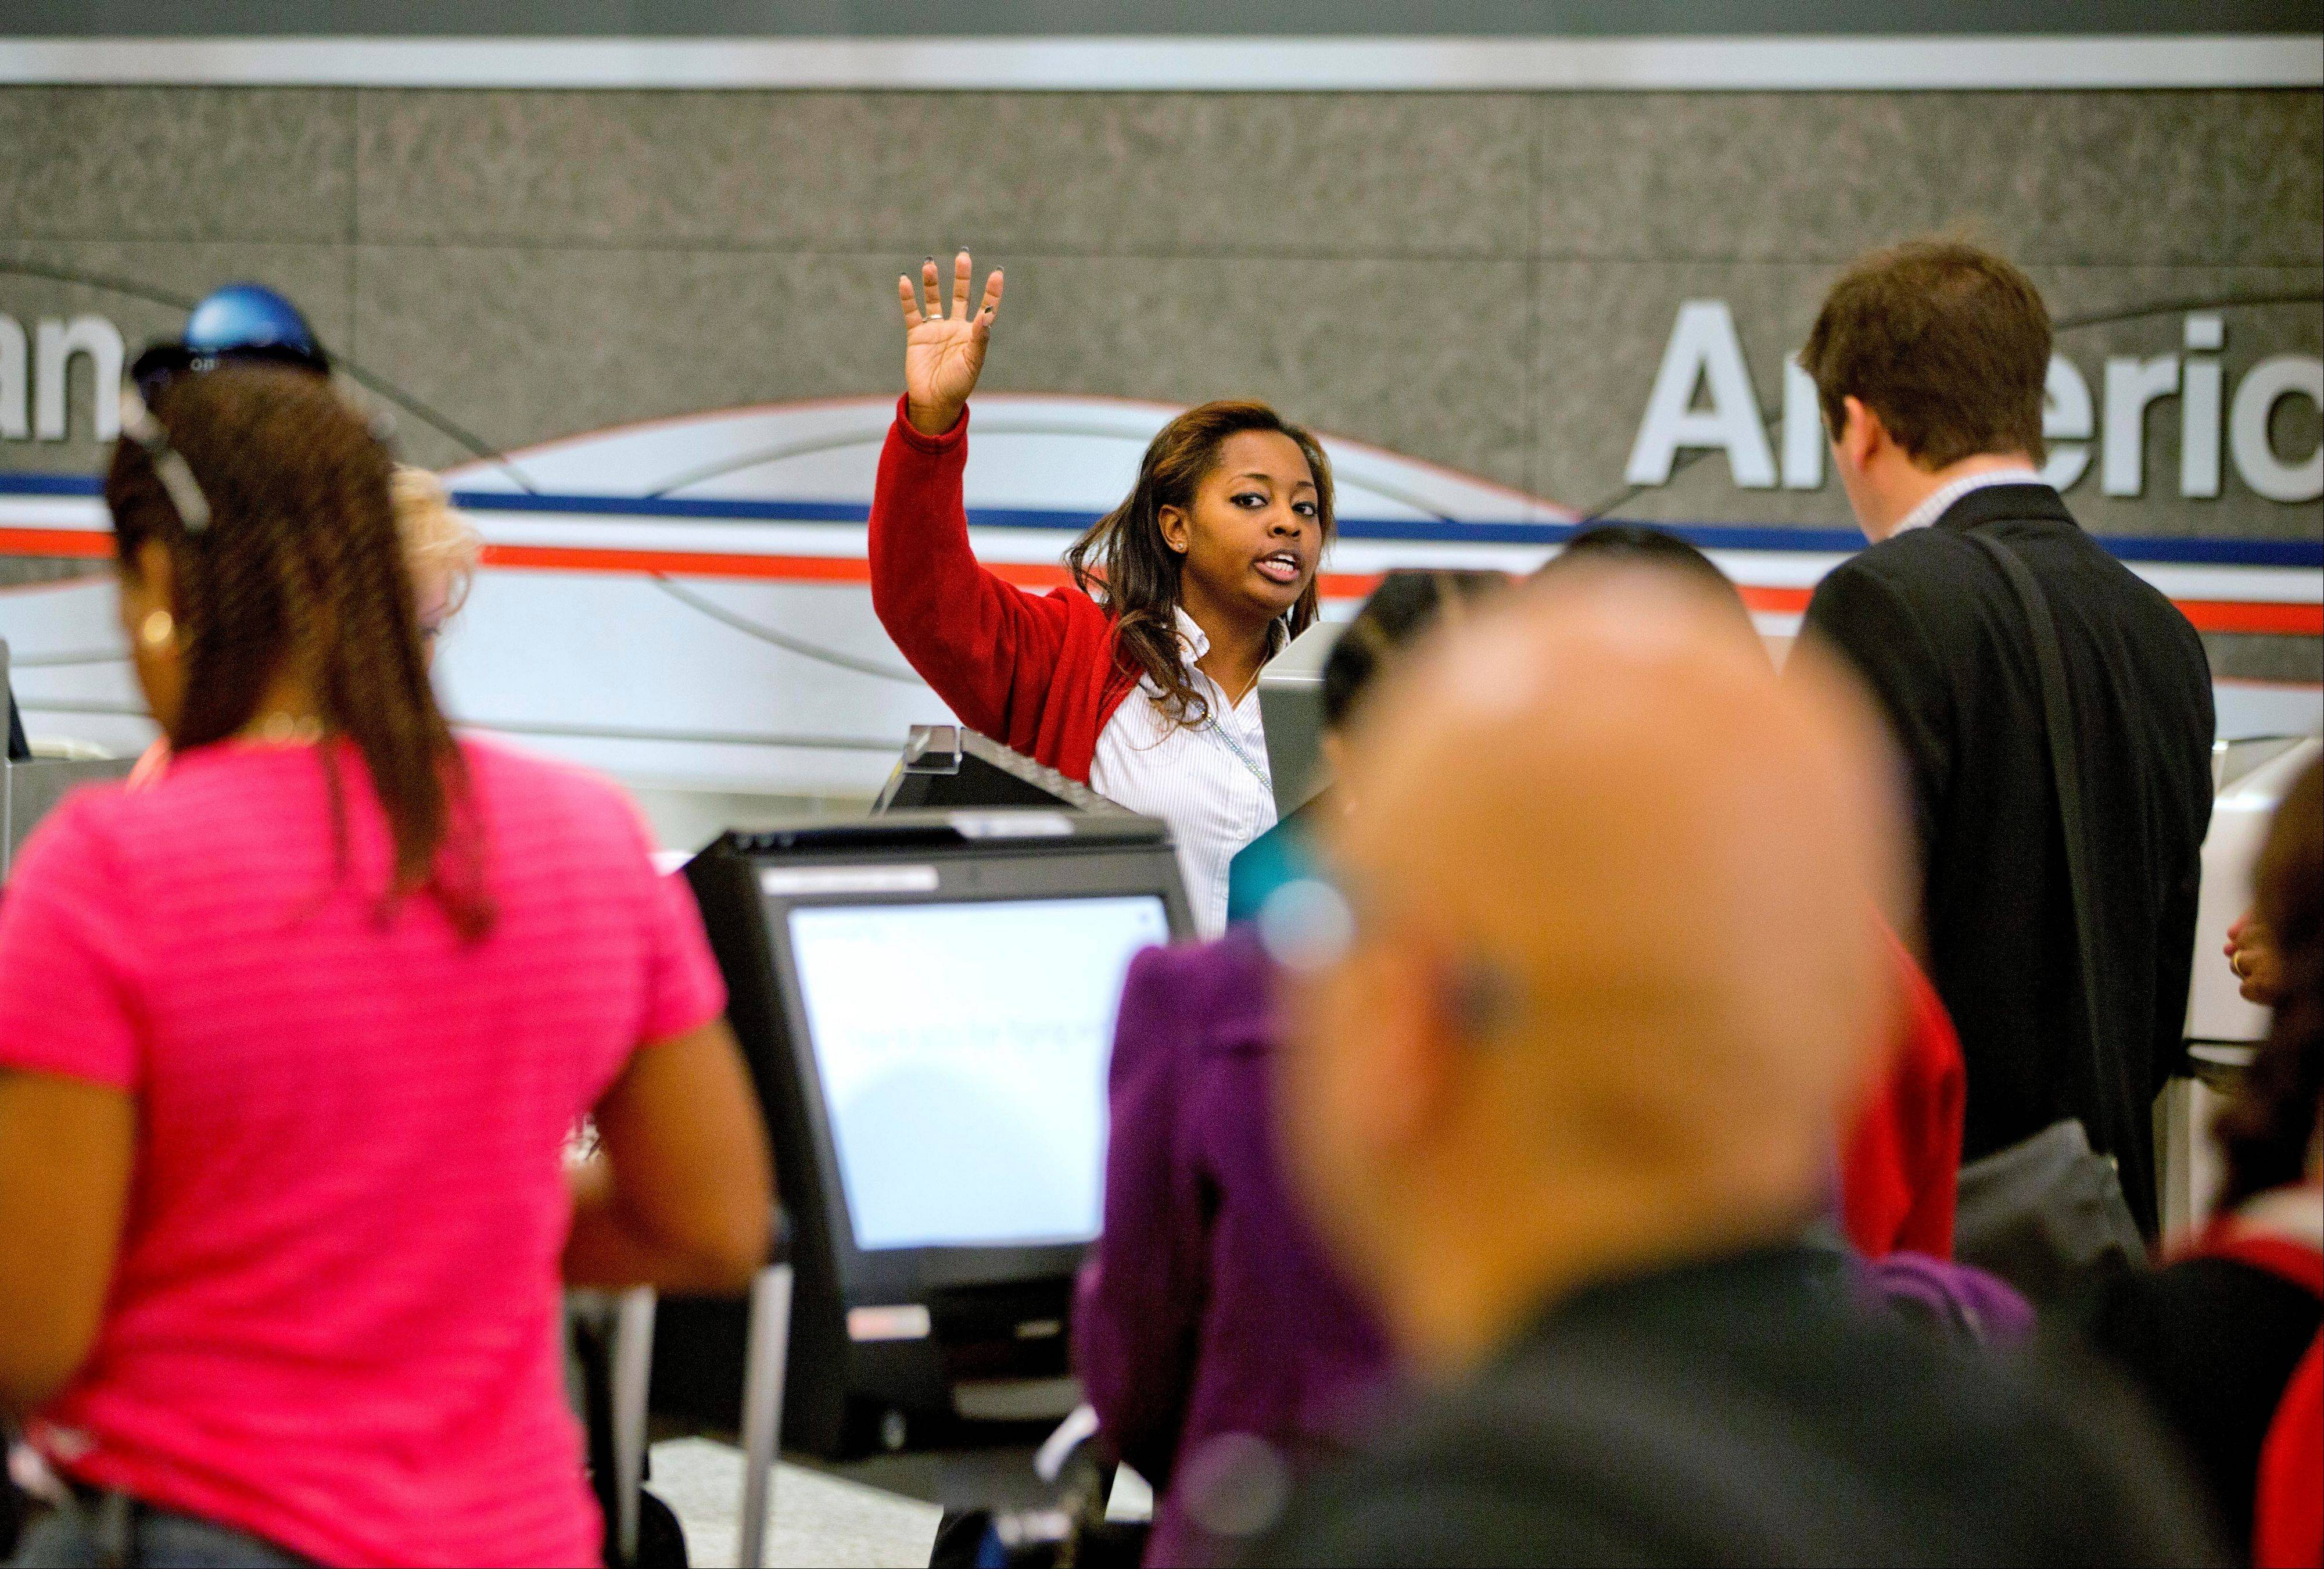 The parent of American Airlines is reporting a smaller loss for the first quarter than a year ago on slightly higher revenue and much lower labor costs.